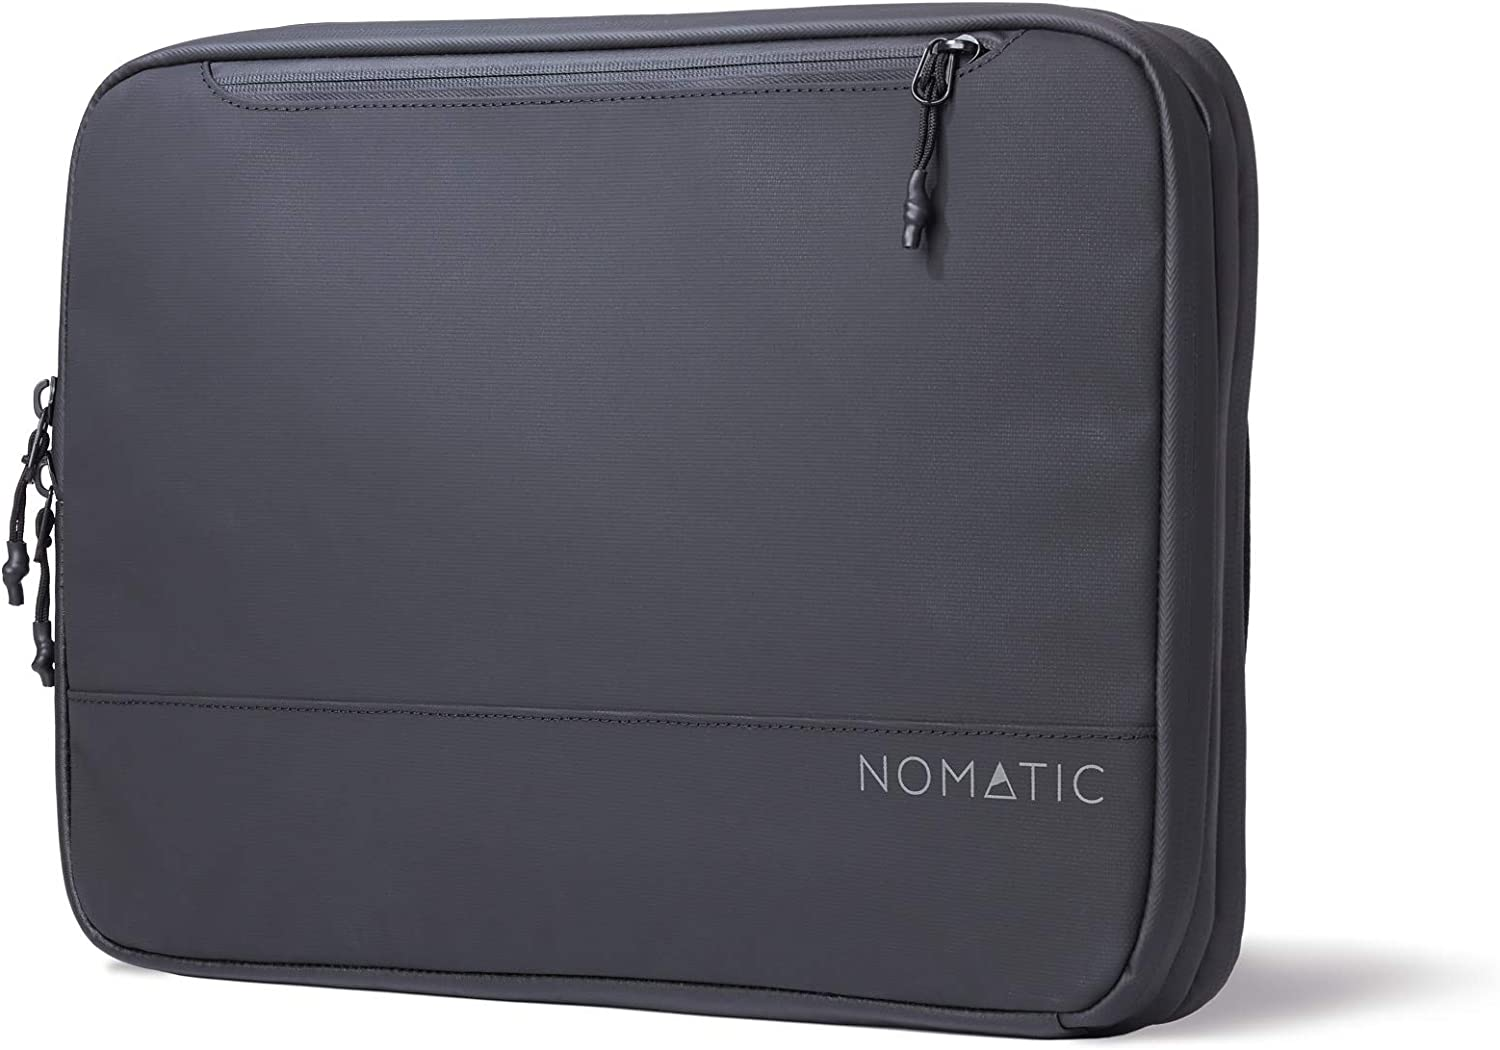 NOMATIC Tech Case- Laptop Sleeve Bag Compatible with 15 inch MacBook Pro, MacBook Air, iPad Pro, Notebook Computer and Chargers